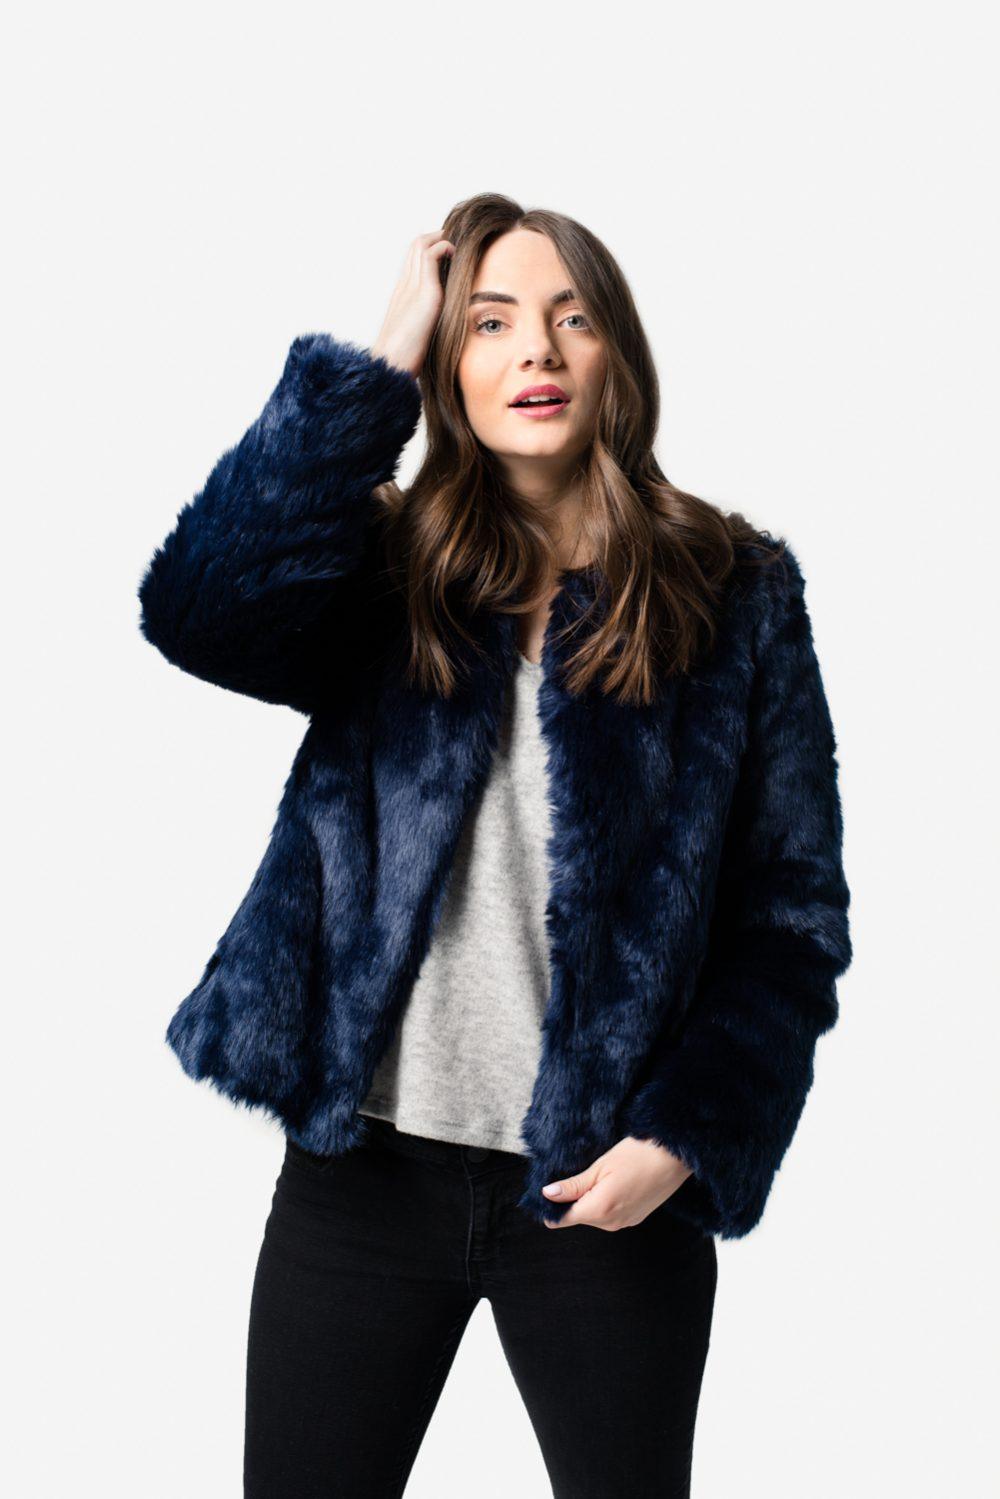 Utah Fashion Photographer Stylist Brunette Model Jumper Grey Navy Studio Lighting Fur Coat Black Pants Model BYU